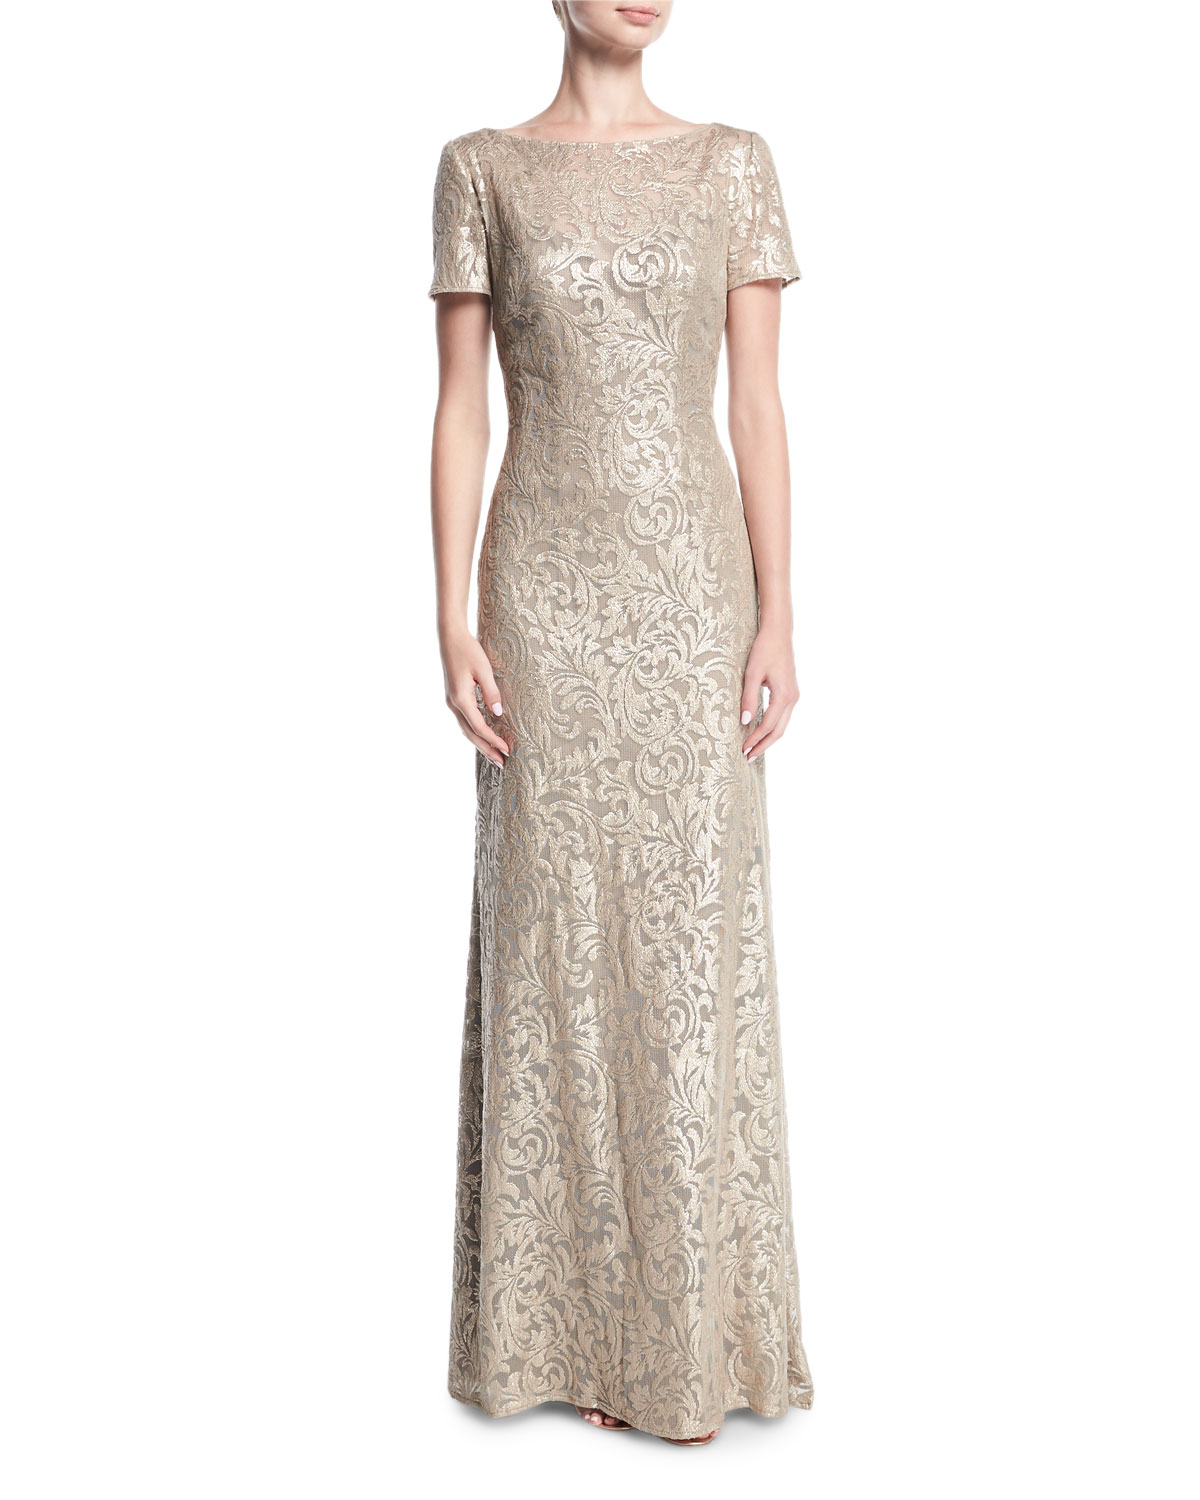 La Femme Boat Neck Short Sleeve Lace Embroidered Evening Gown